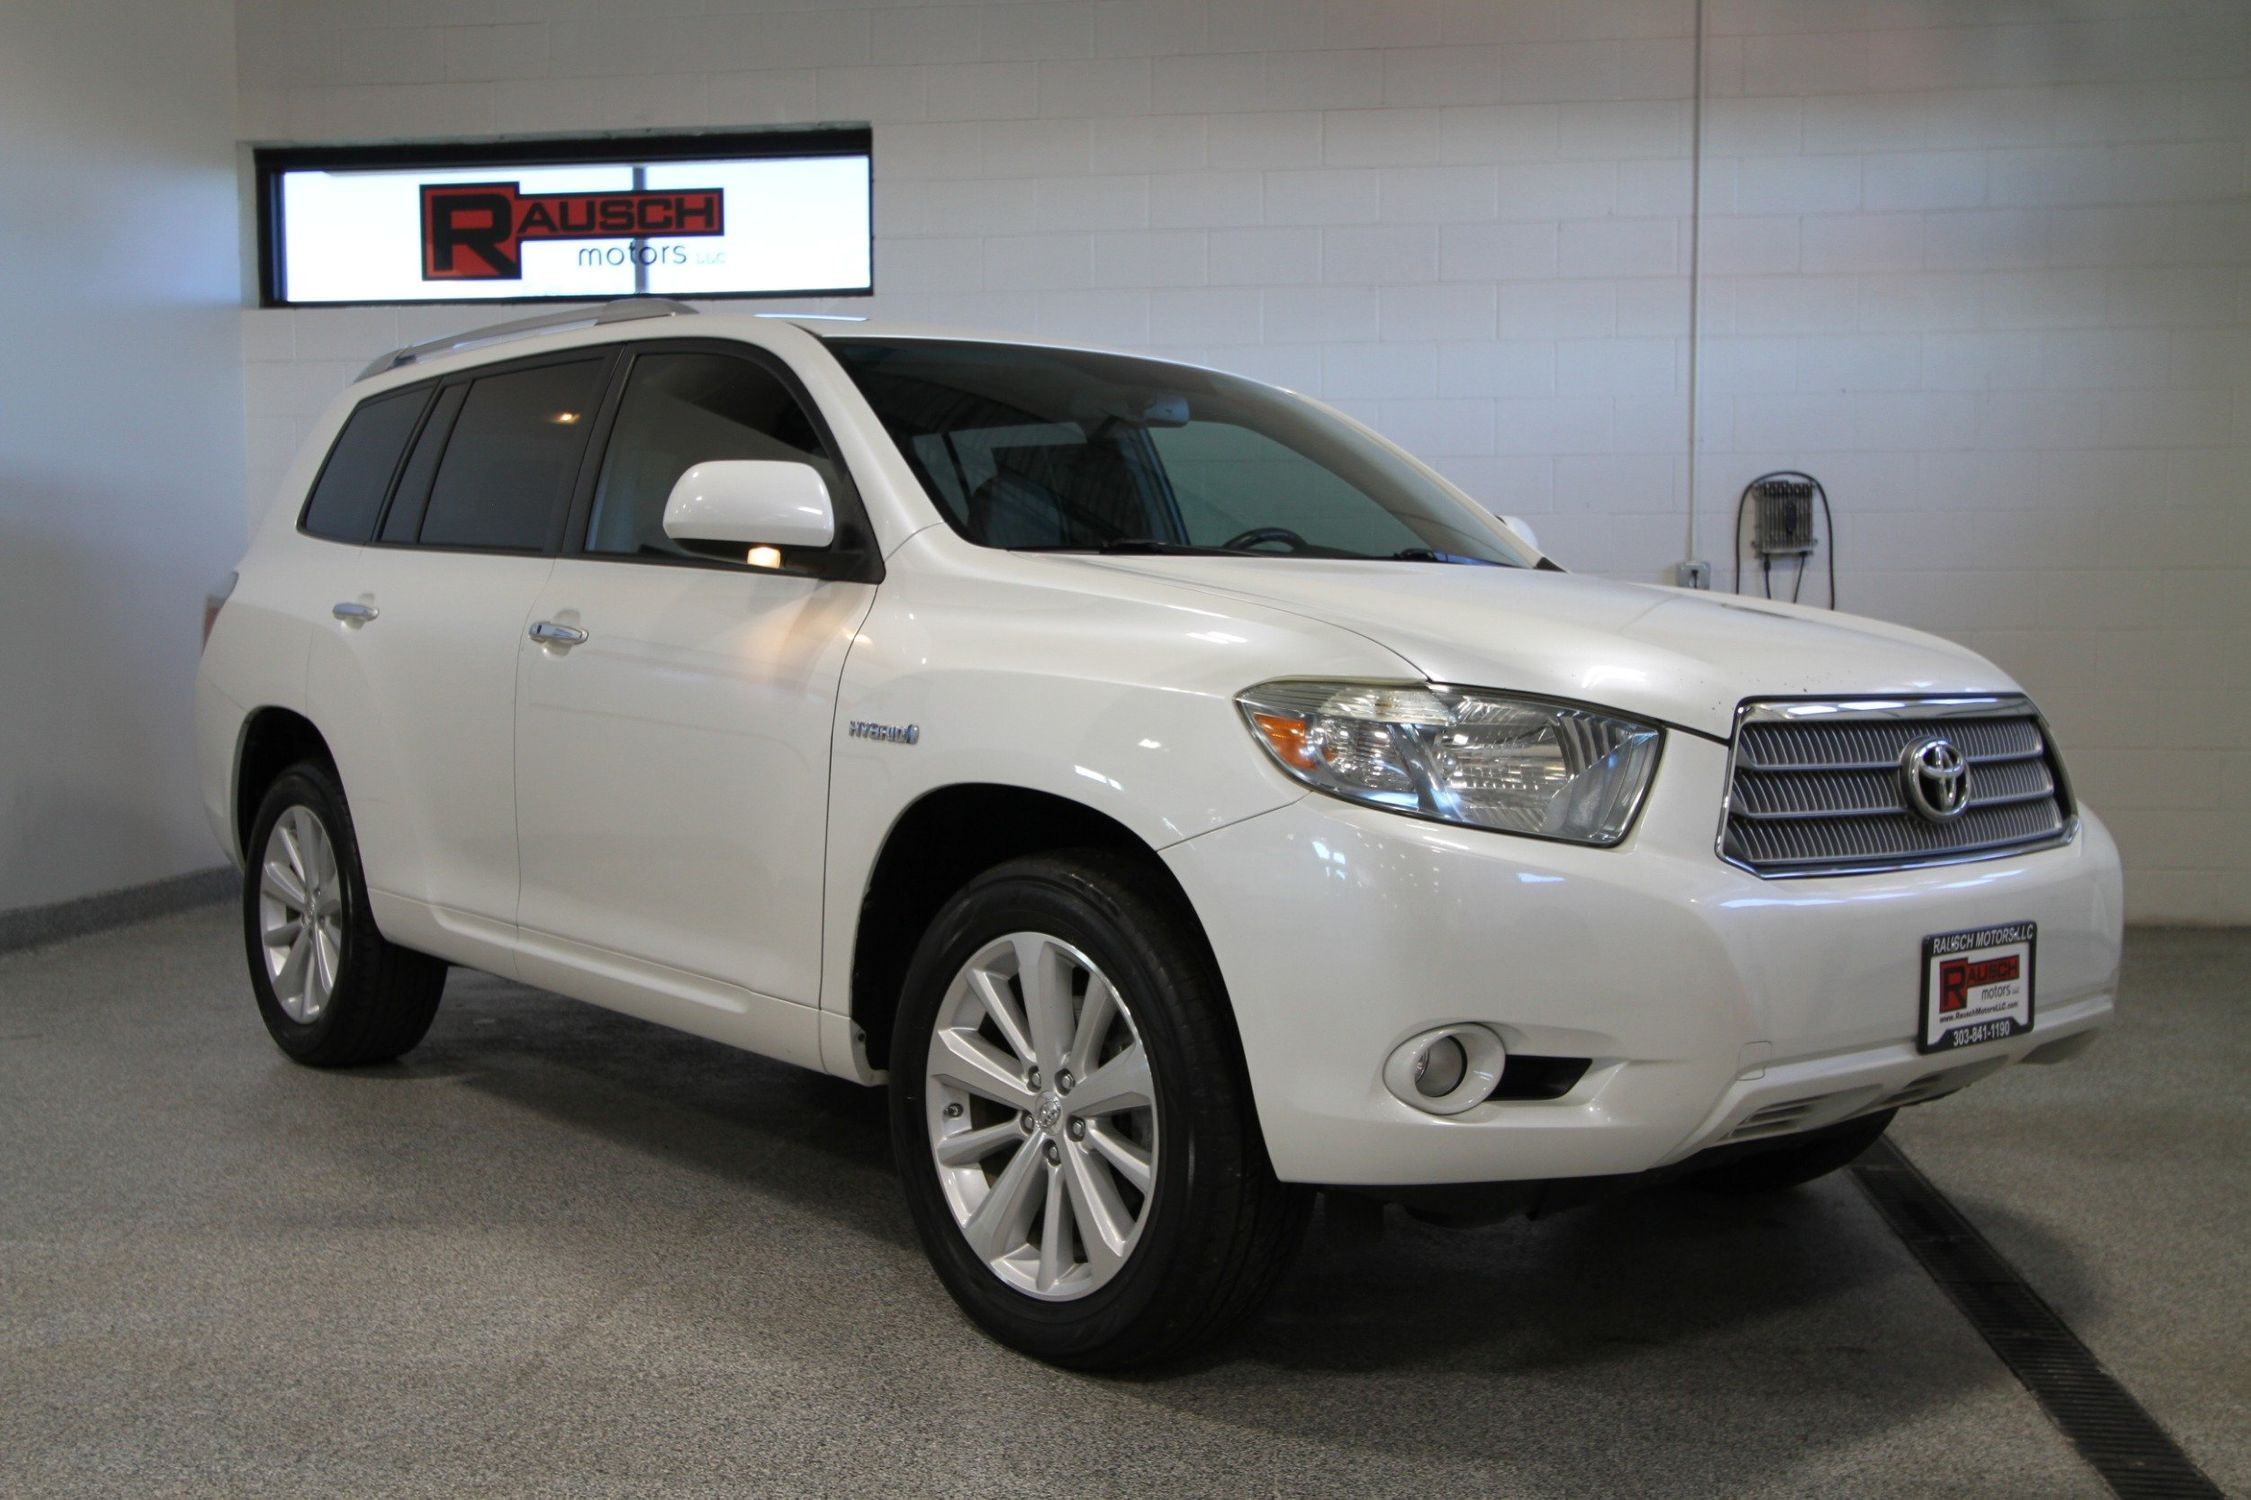 2009 Toyota Highlander Hybrid Limited Rausch Motors Ford Escape Lift Gate Wiring View 24 Hi Res Photos